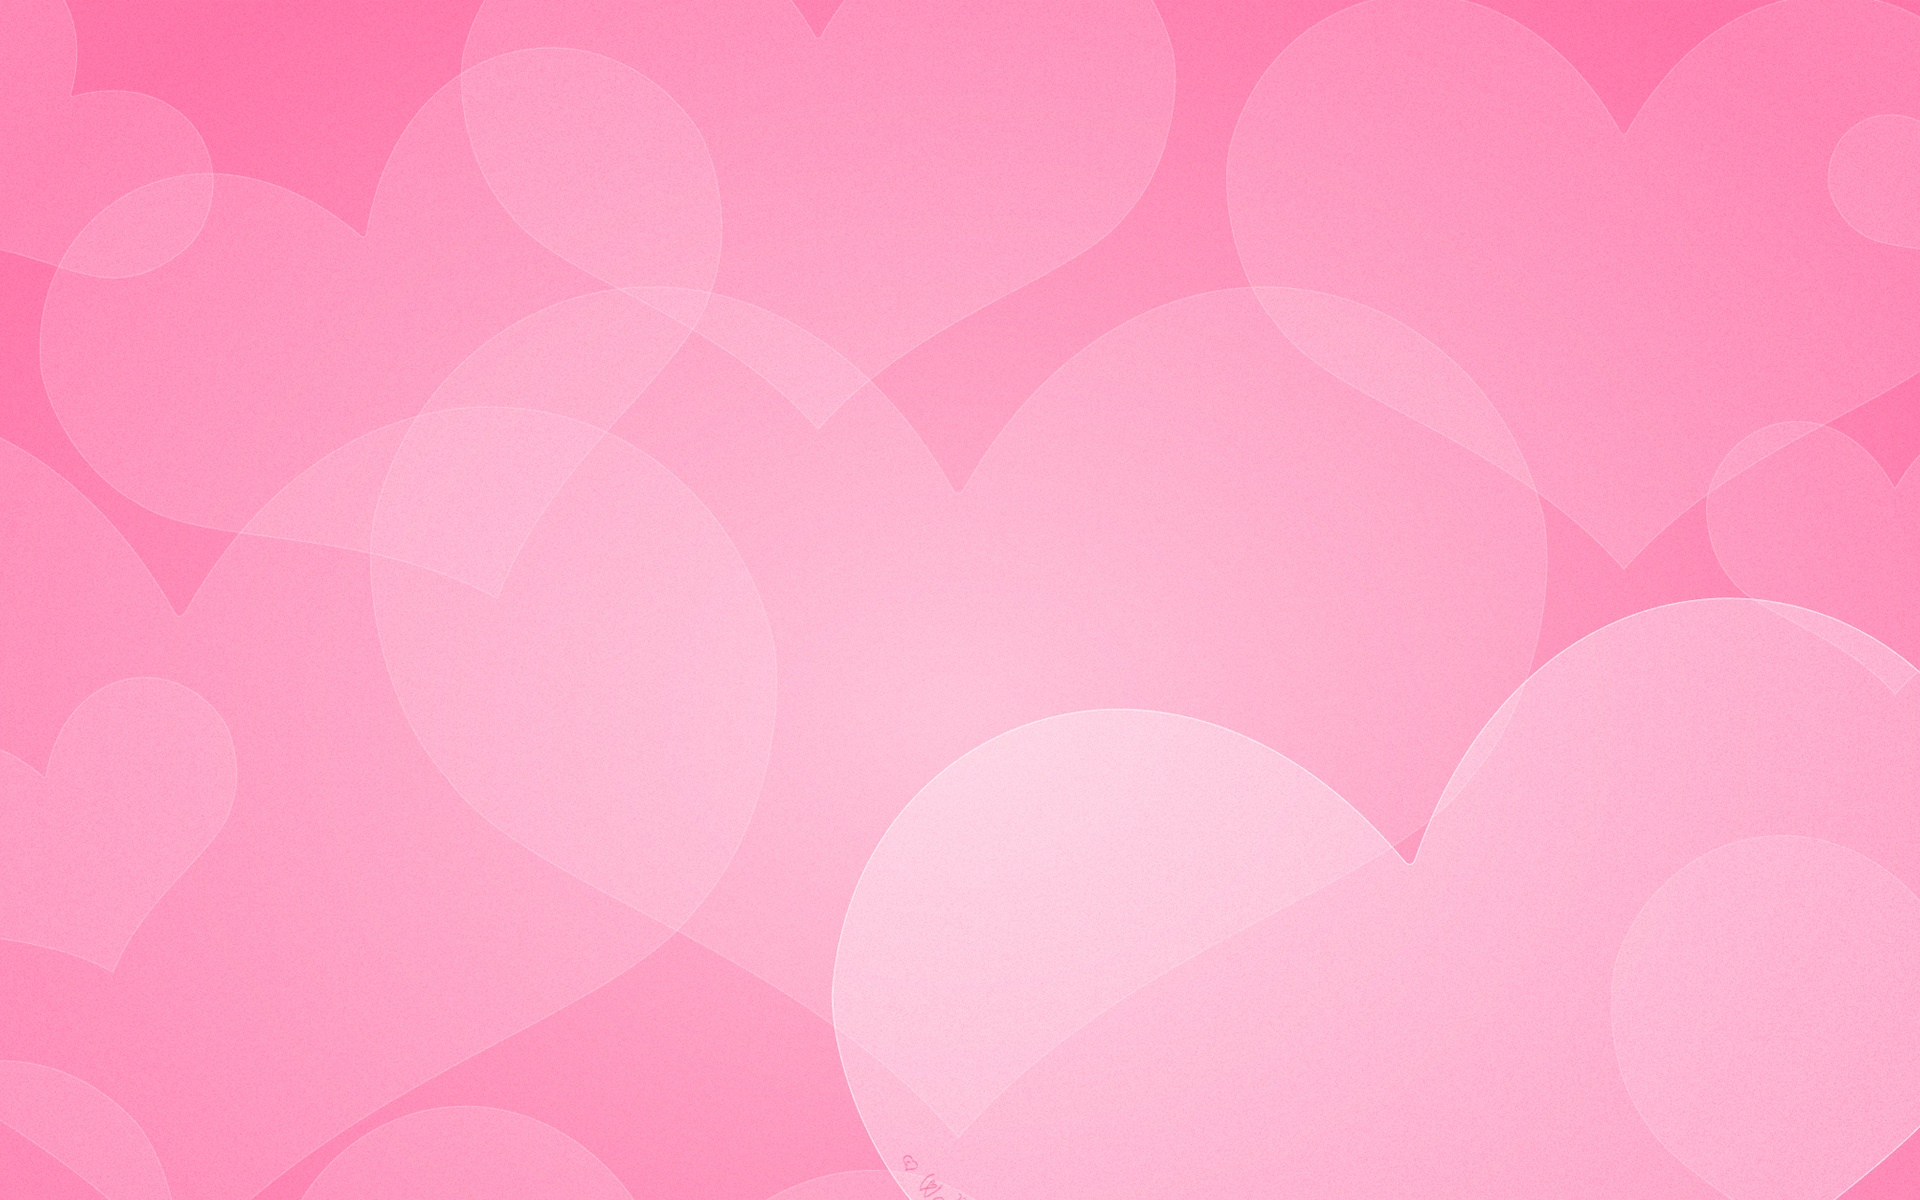 Pink Heart Background Wallpaper - WallpaperSafari